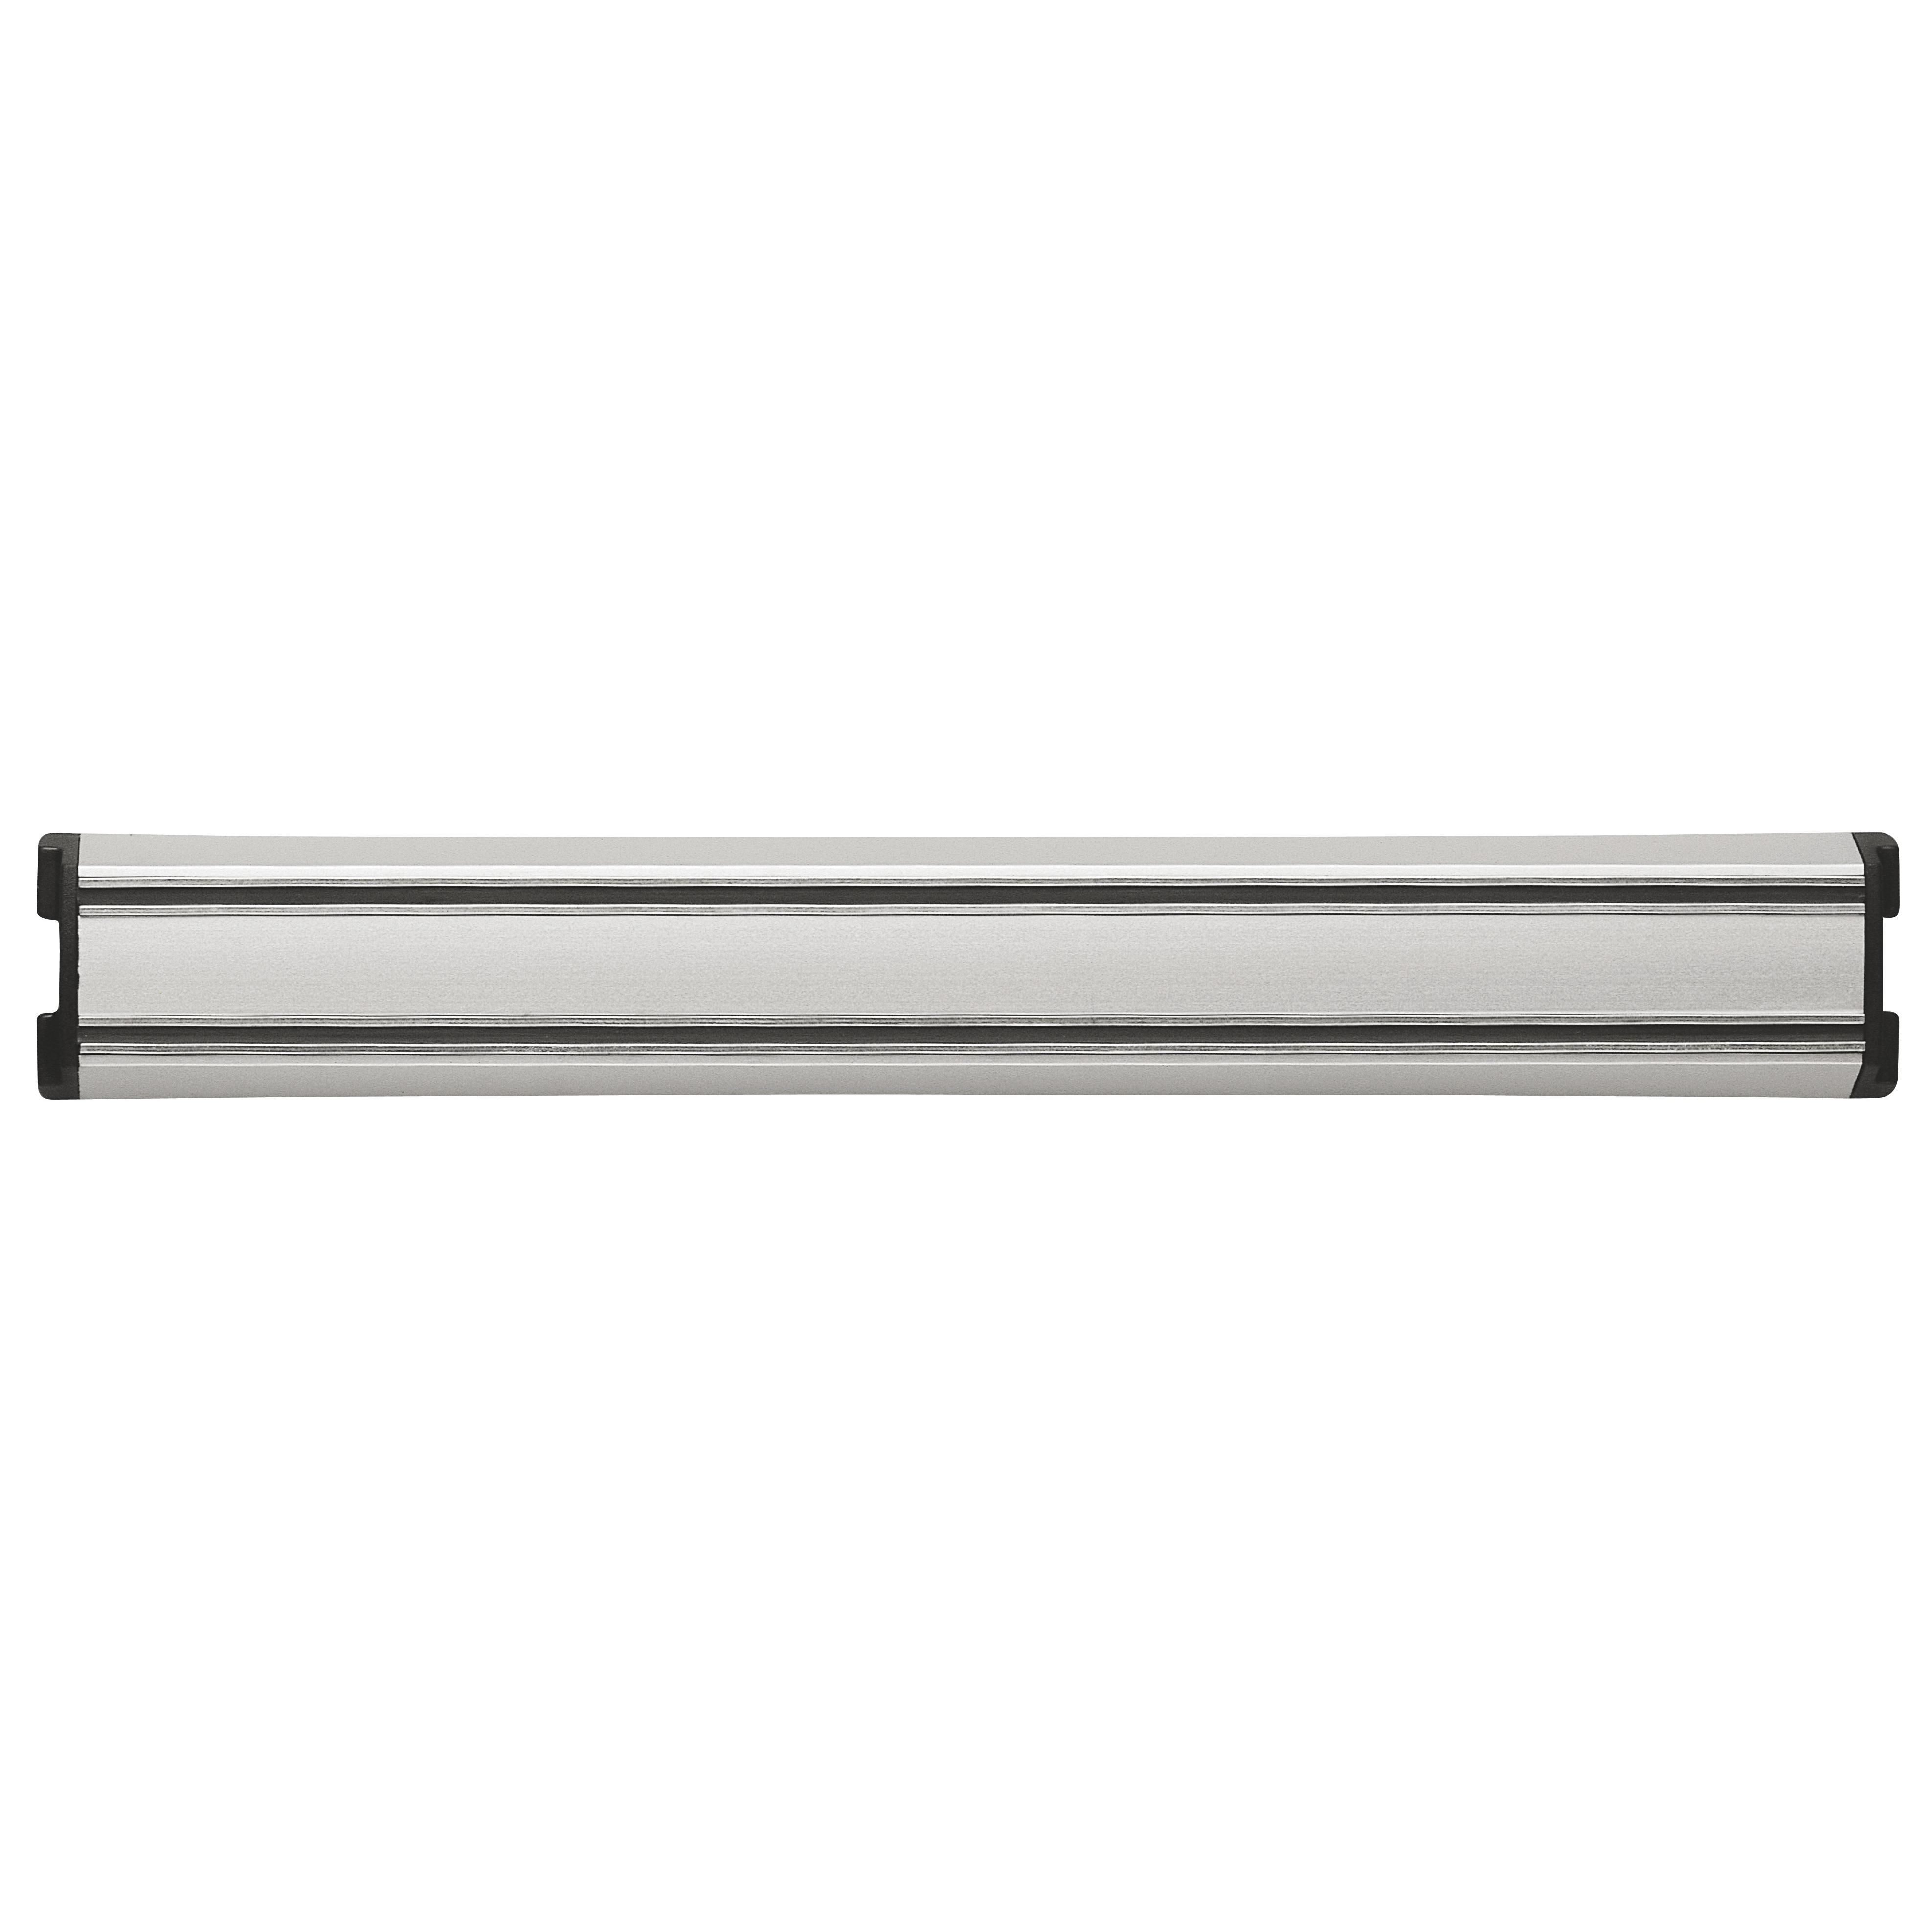 Zwilling 32622-300 Magnetic bar